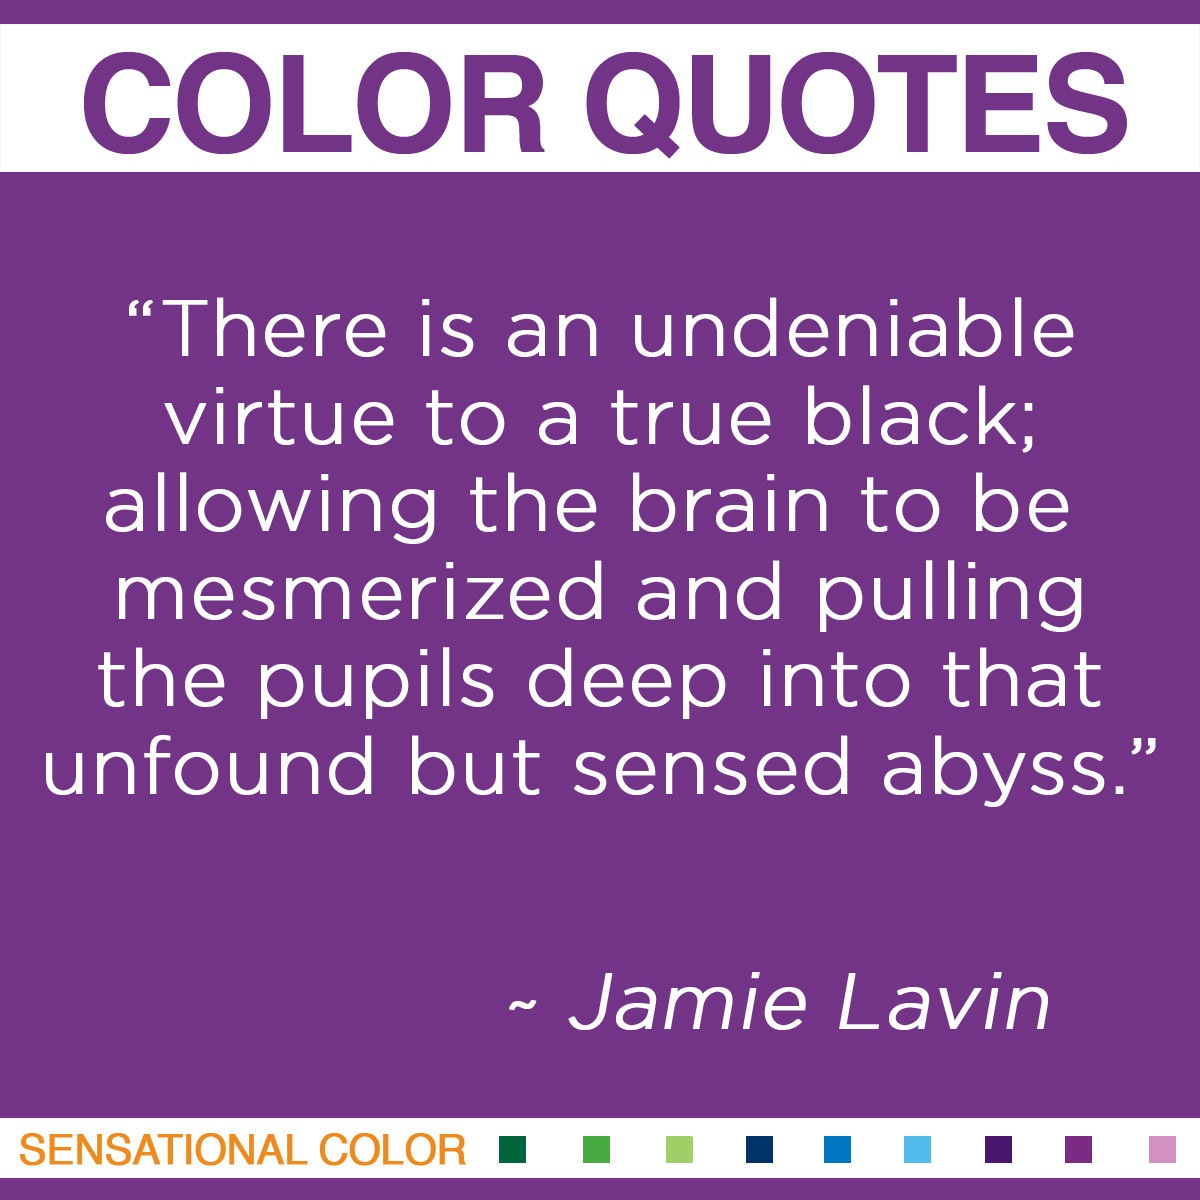 """""""There is an undeniable virtue to a true black; allowing the brain to be mesmerized and pulling the pupils deep into that unfound but sensed abyss."""" - Jamie Lavin"""